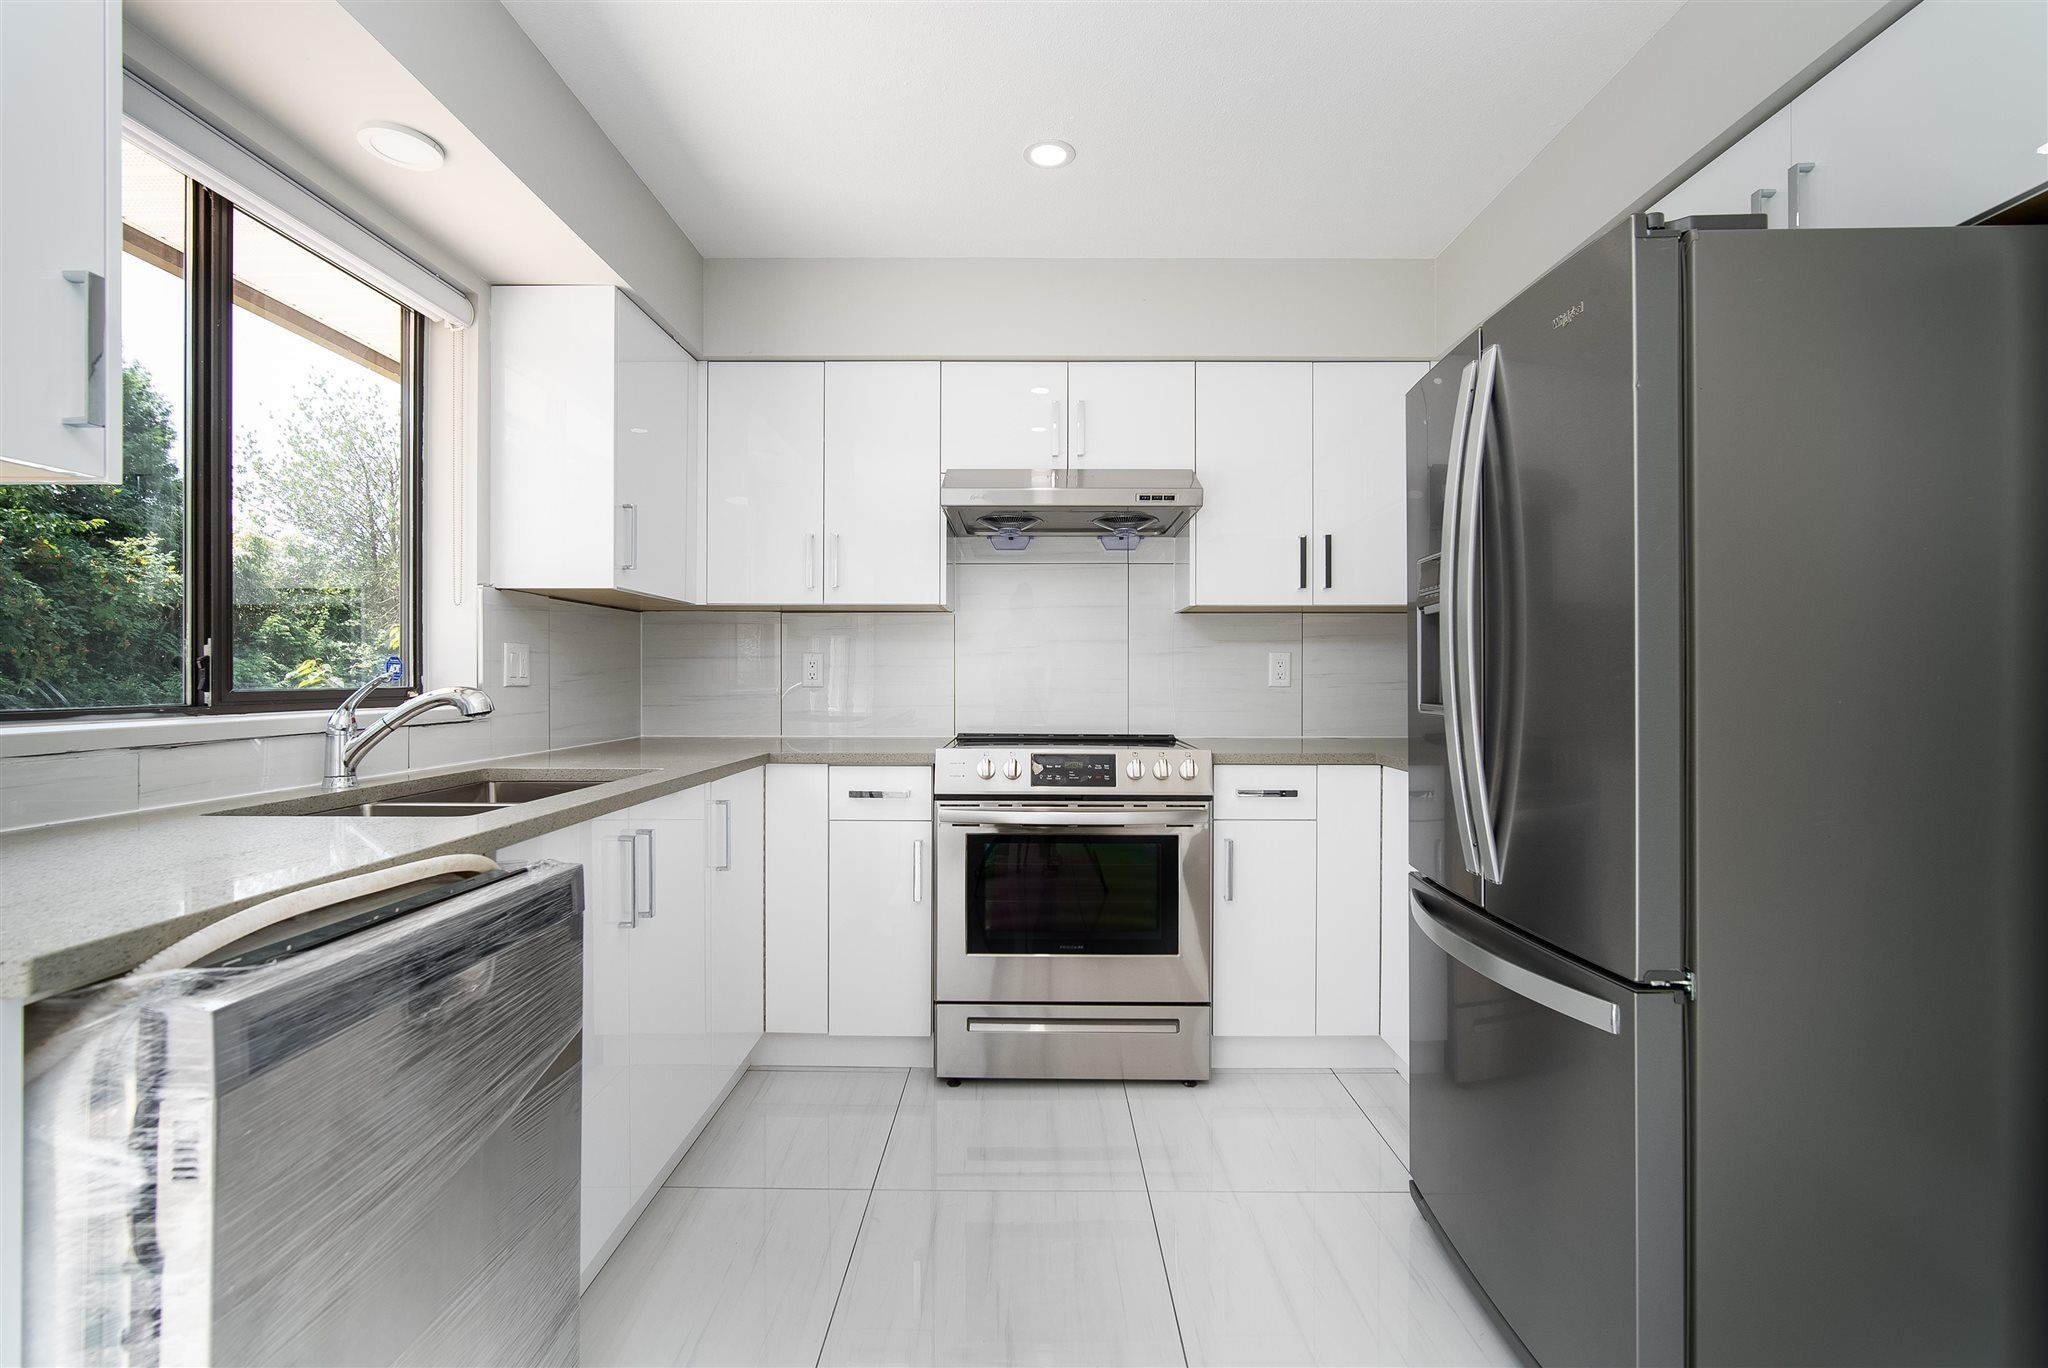 Main Photo: 32082 SCOTT Avenue in Mission: Mission BC House for sale : MLS®# R2604498